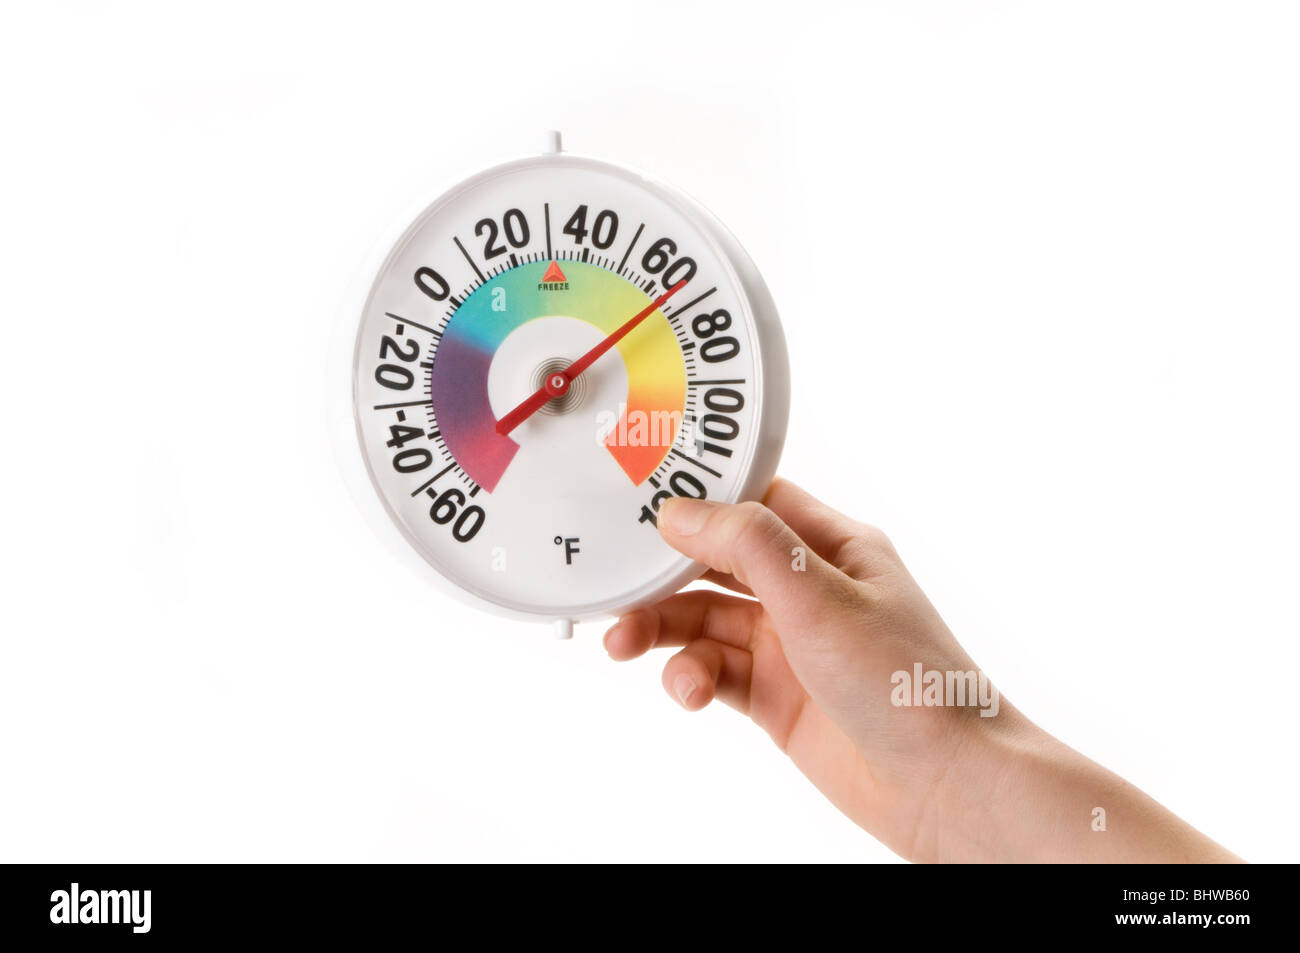 hand and round thermometer - Stock Image